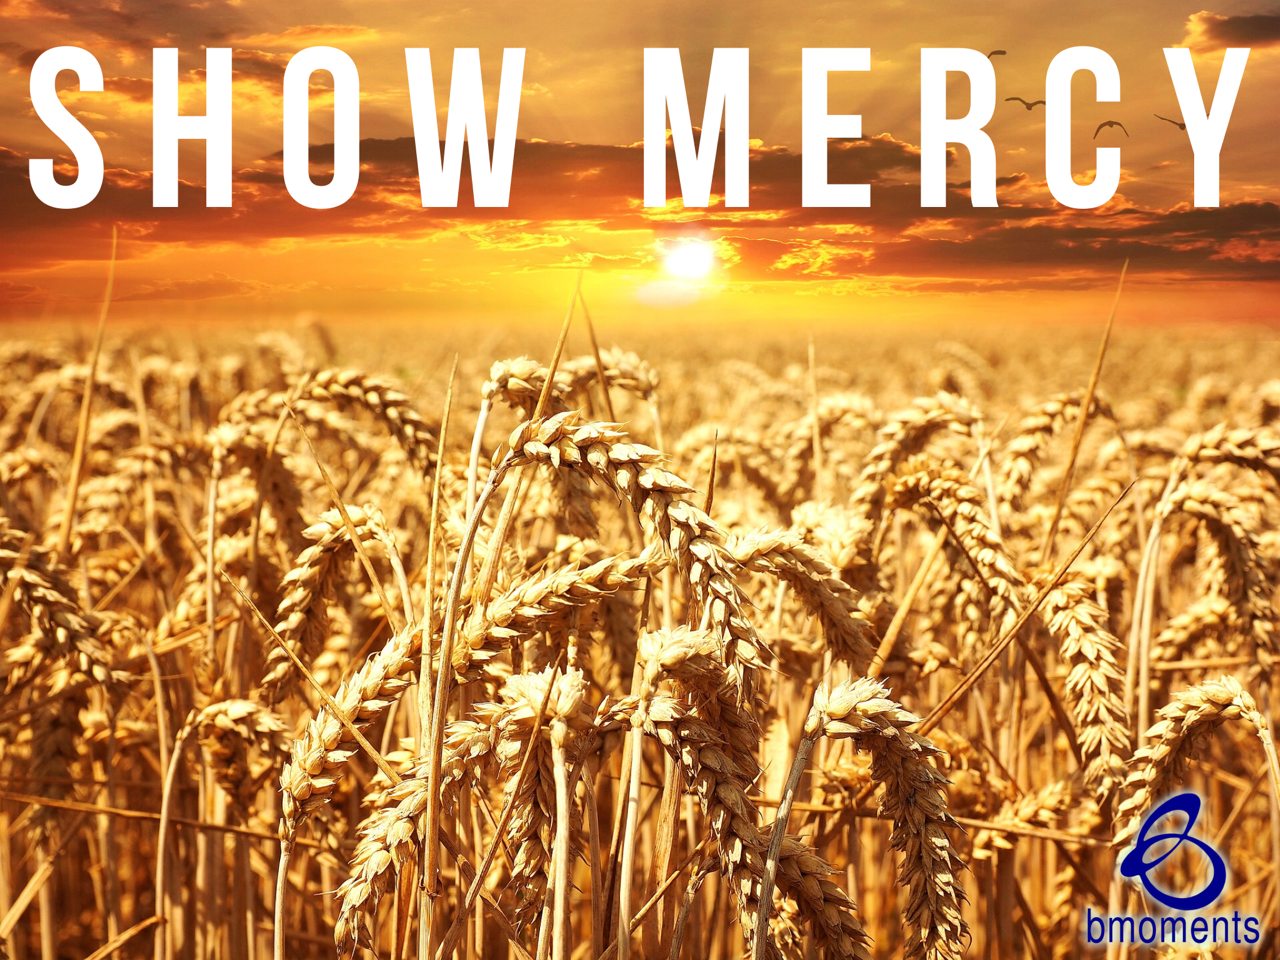 Show Mercy Rather Than Pass Judgment